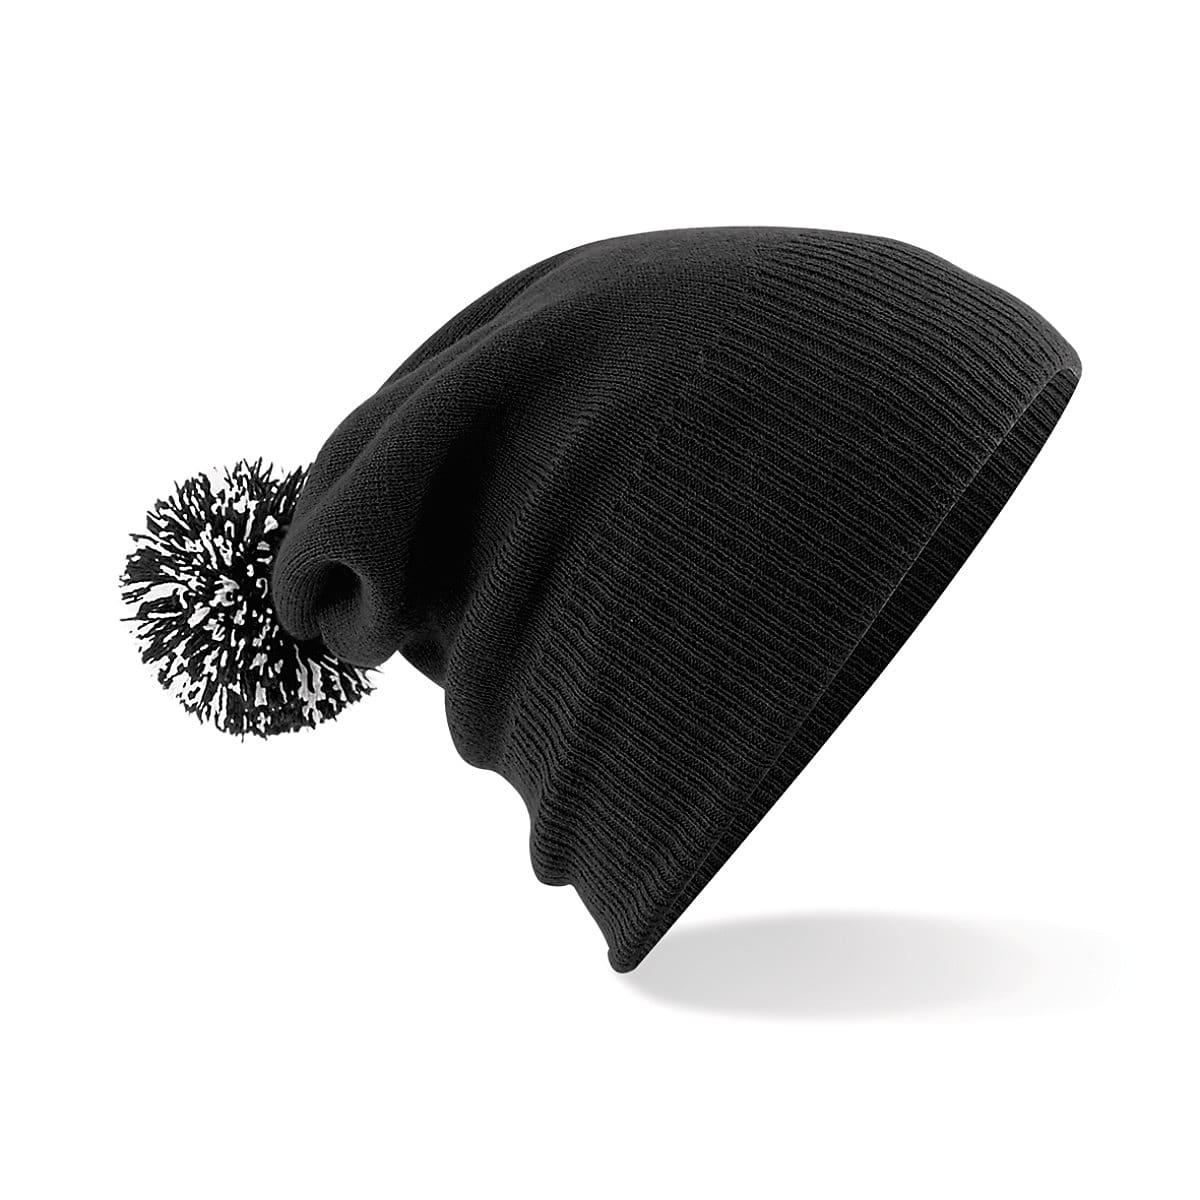 Beechfield Snowstar Beanie Hat in Black / White (Product Code: B450)